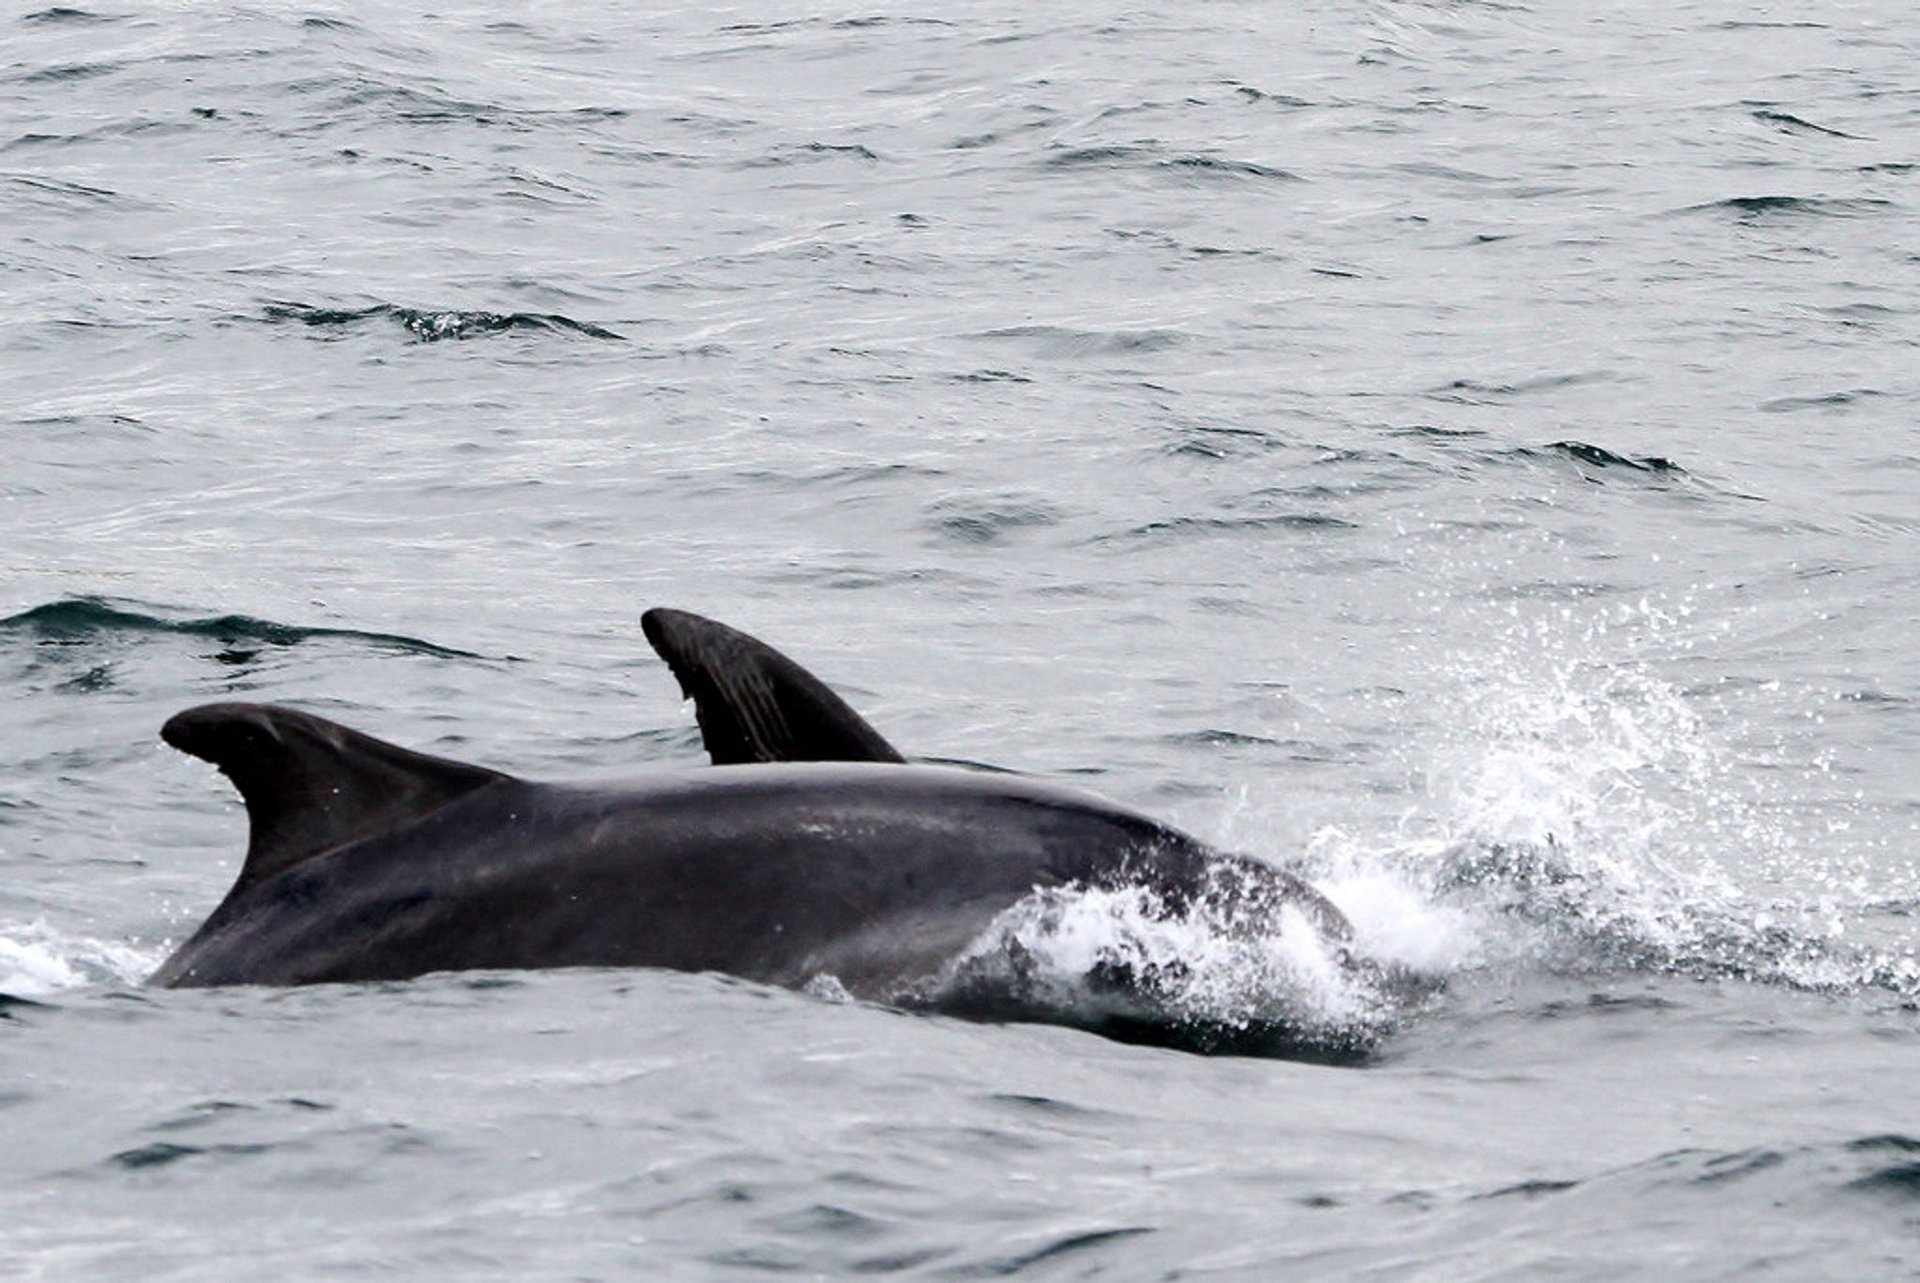 Atlantic Bottlenose Dolphins in Falmouth harbor 2020